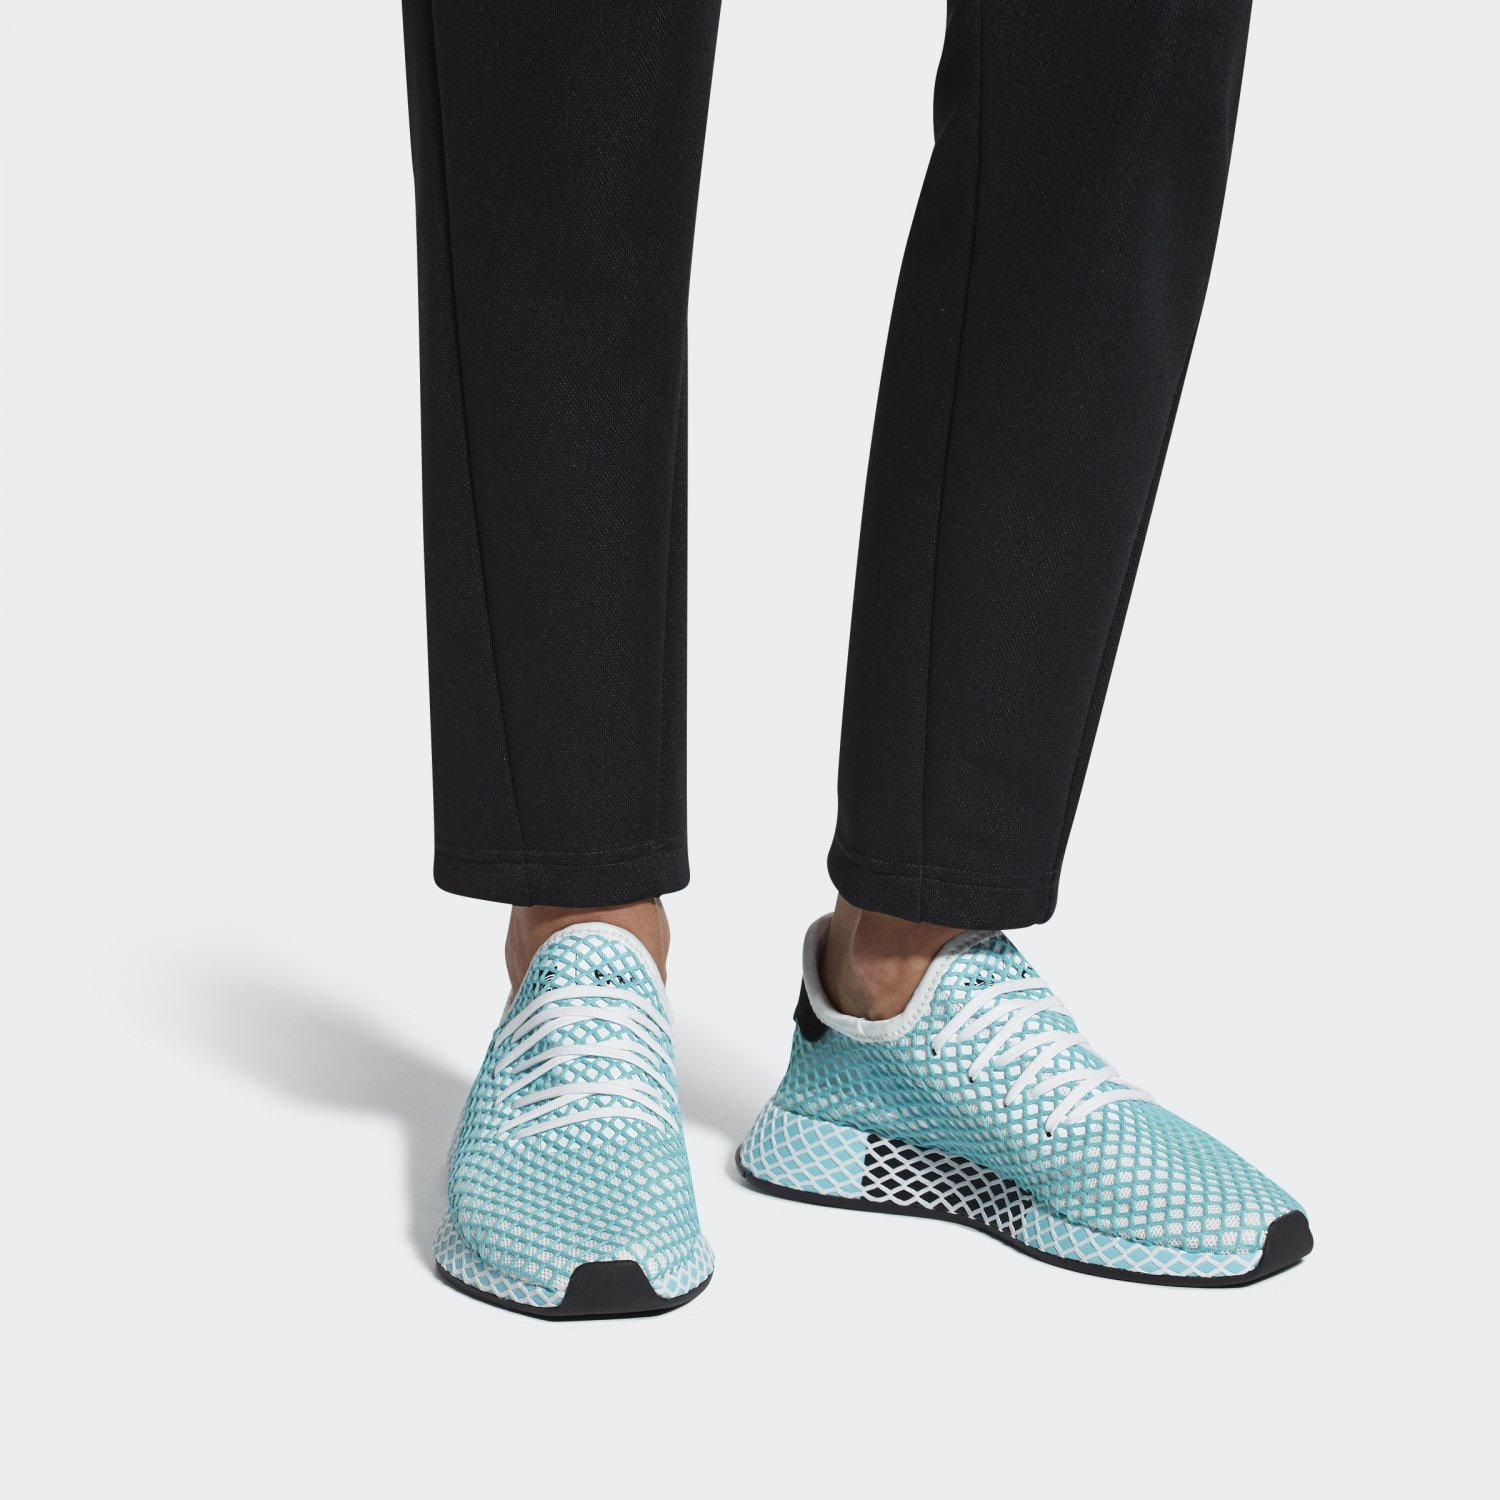 low priced 4a08b 2260c adidas-deerupt-runner-parley-cq2908-release-20180528